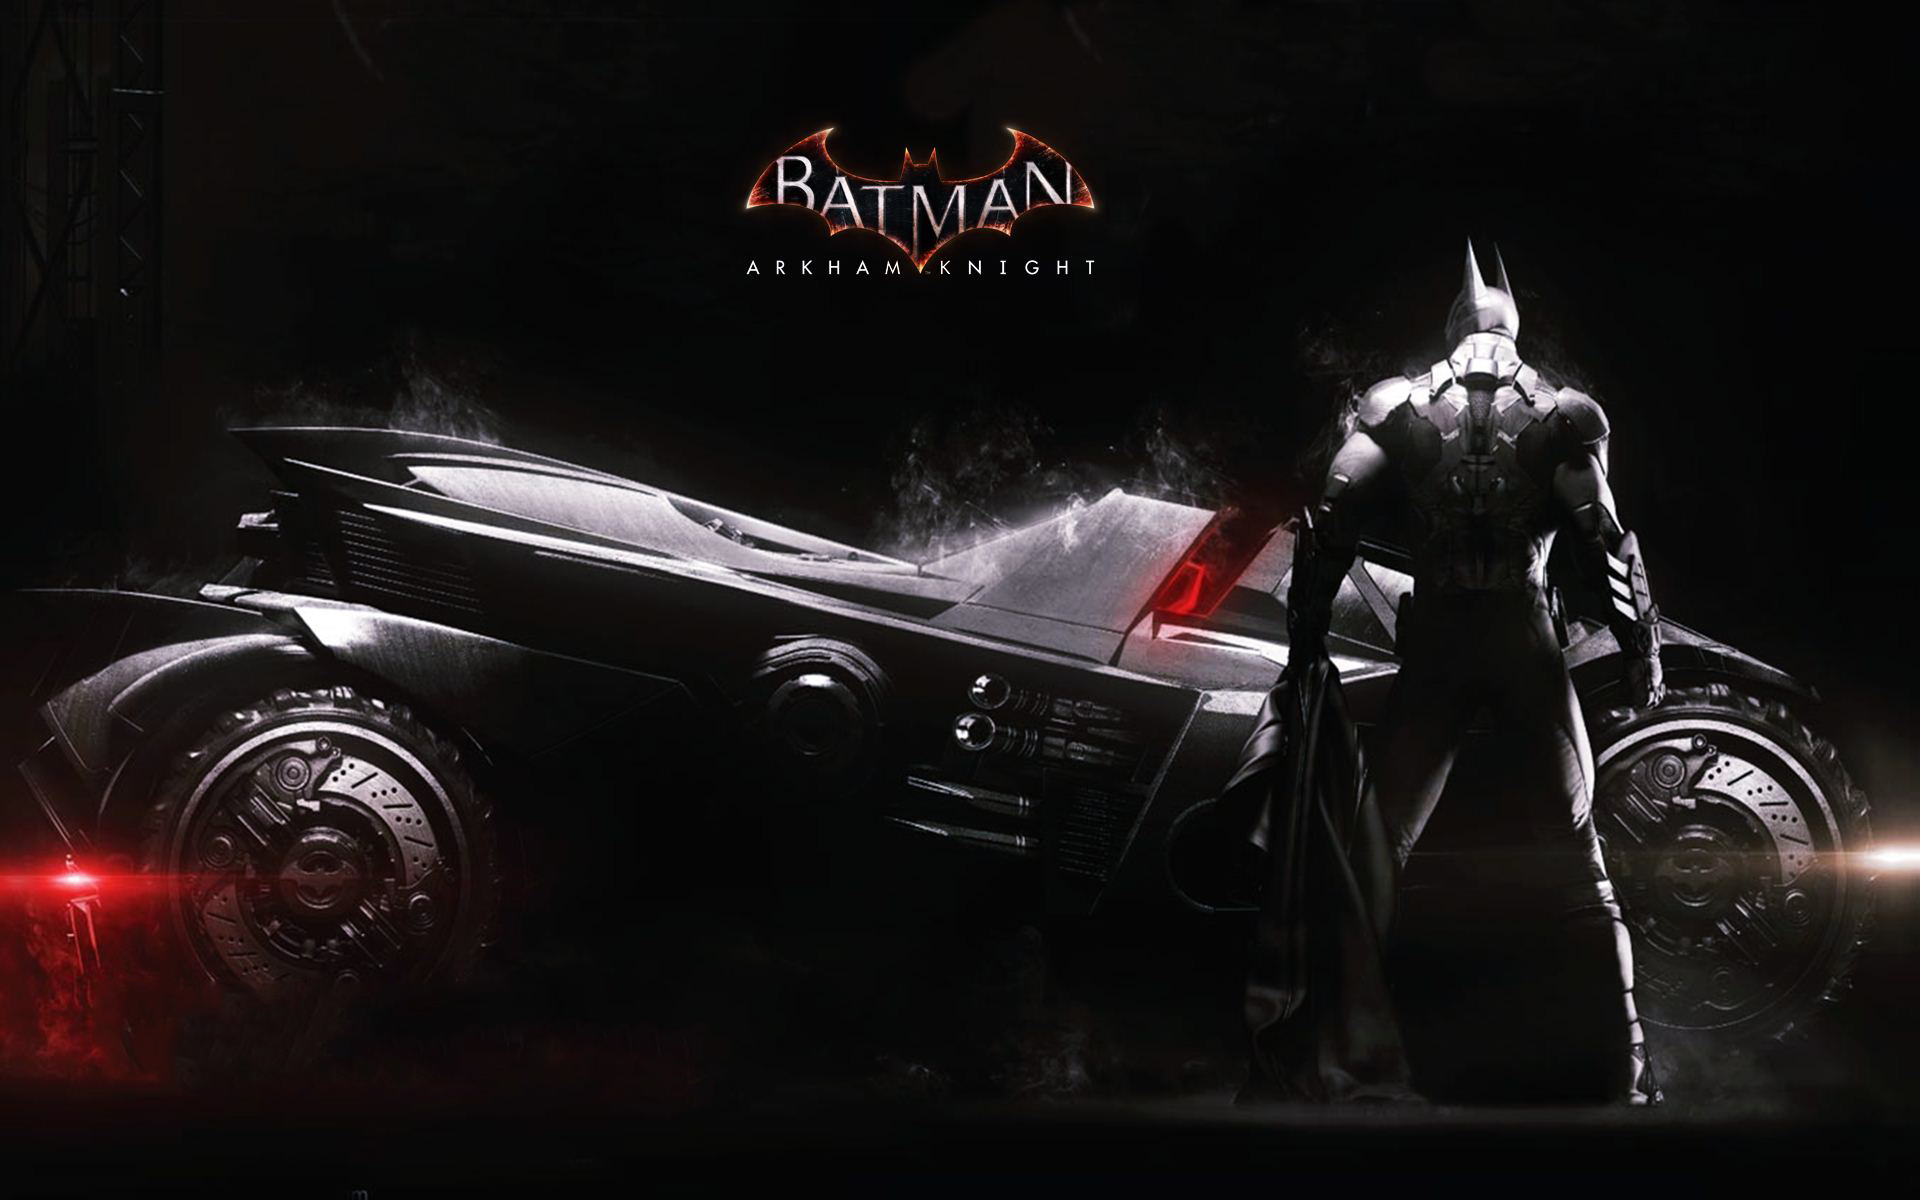 2014 Batman Arkham Knight Batmobile HD Wallpapers